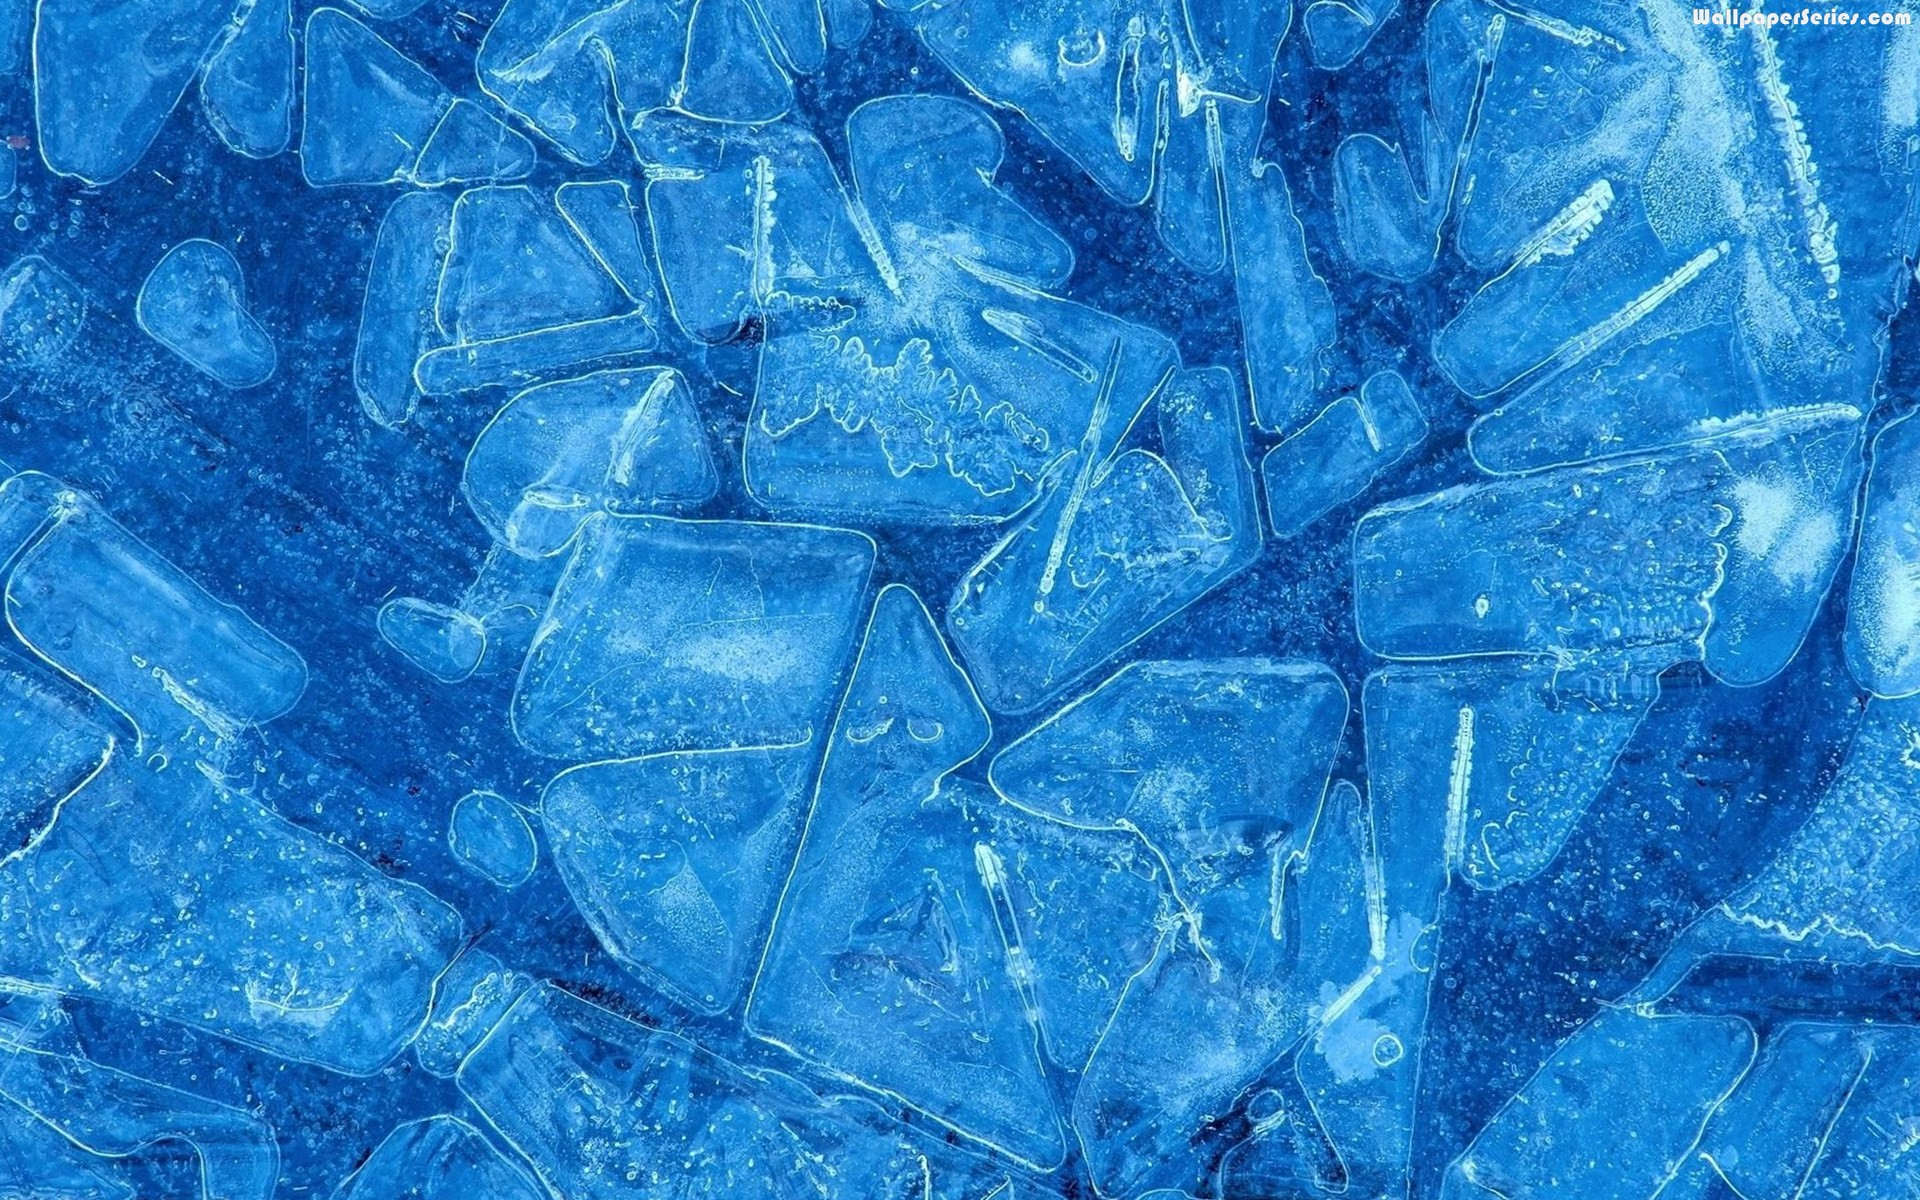 Blue Ice Textu HD Wallpaper Background Images 1920x1200